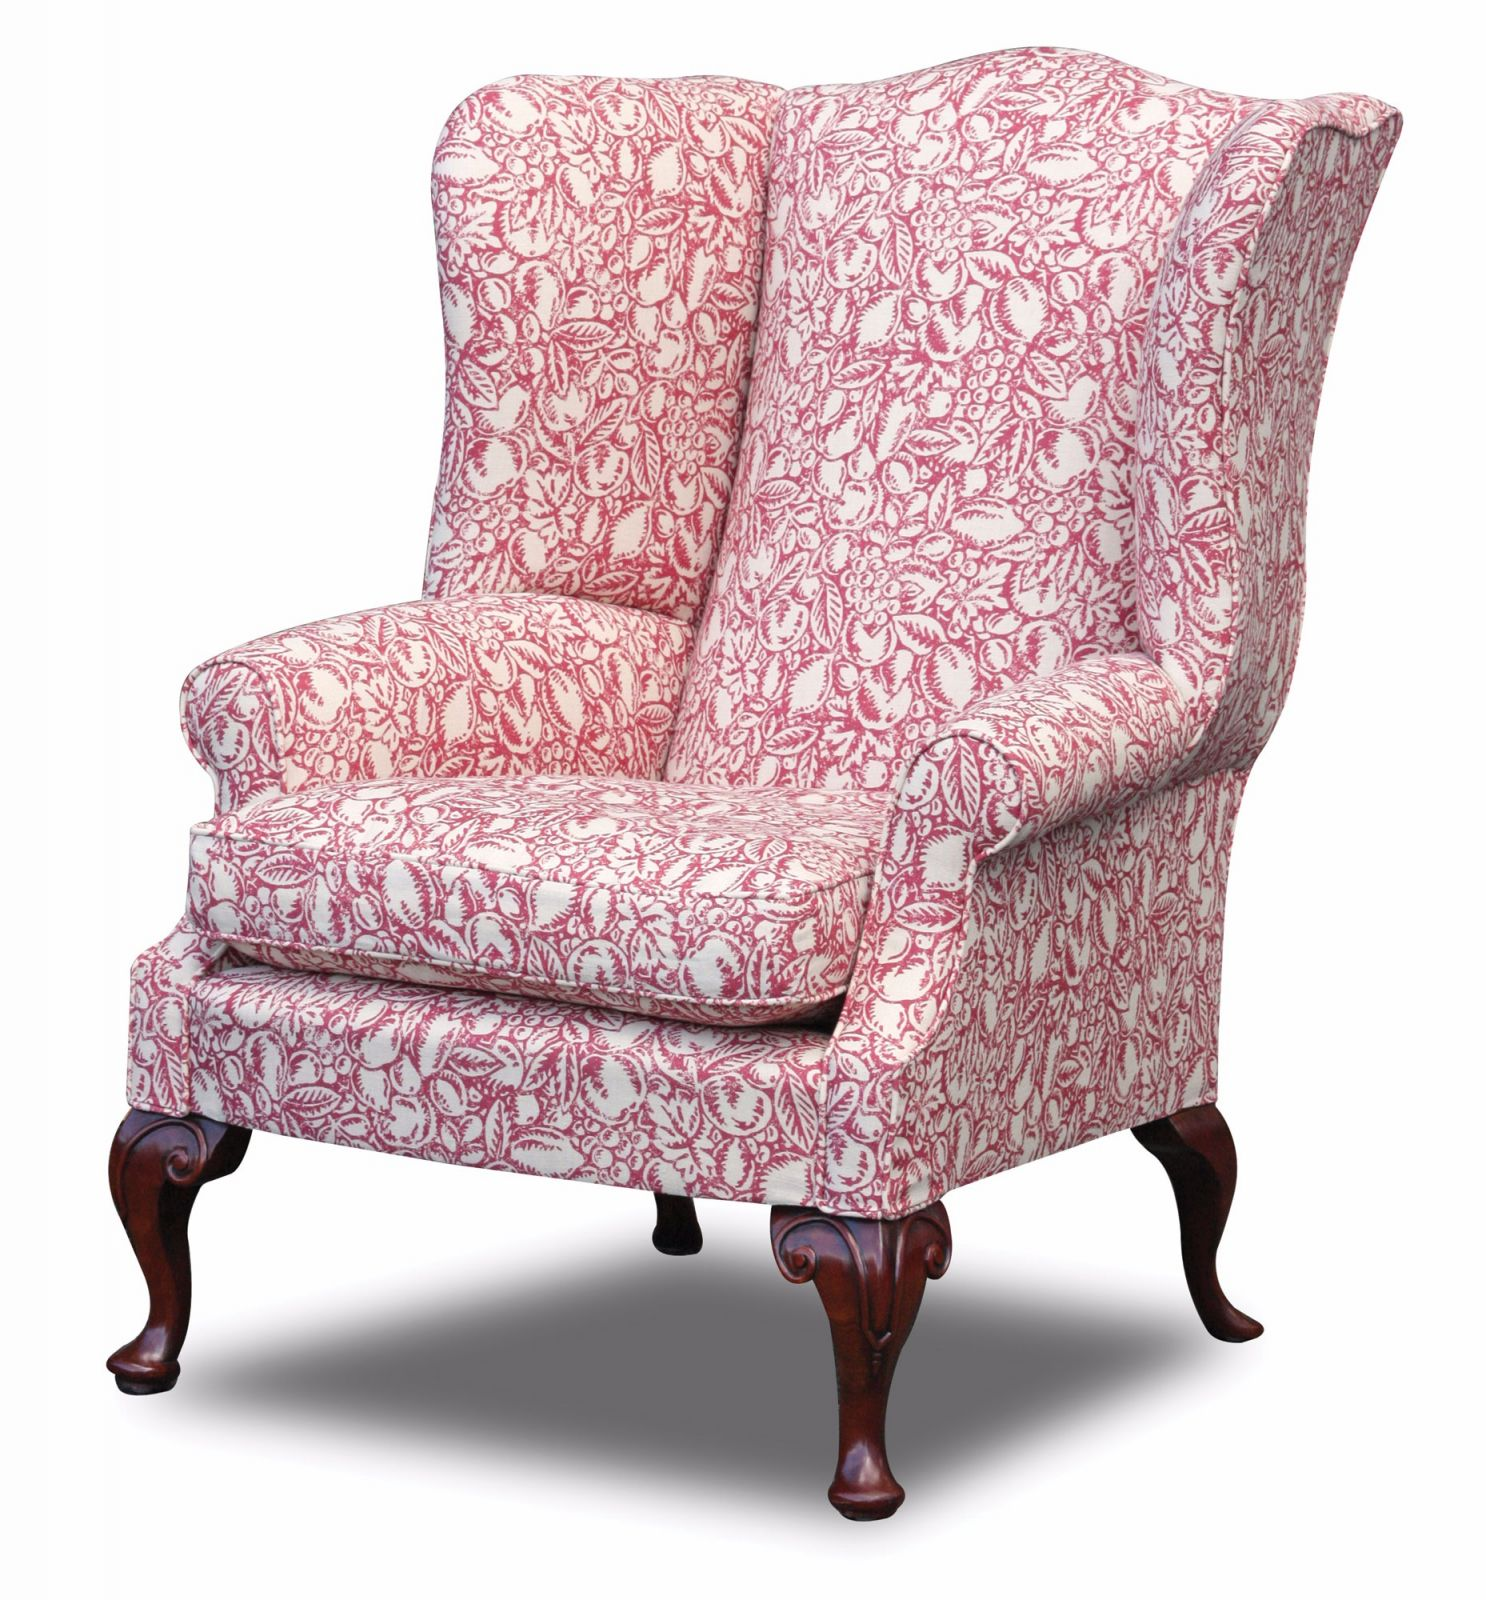 Coleridge Gents wing chair